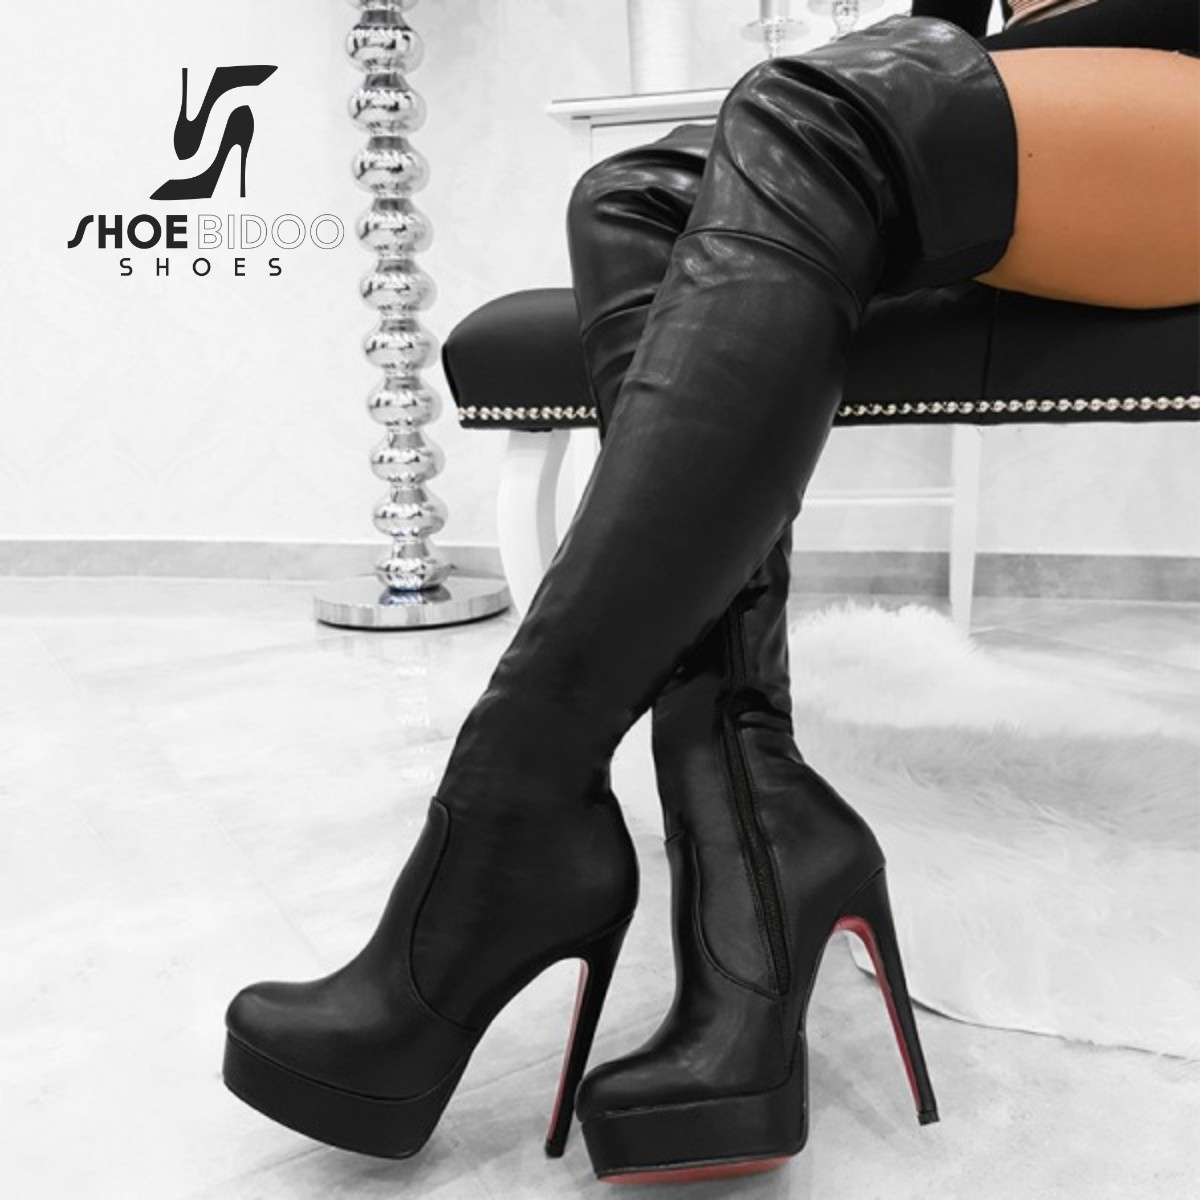 Giaro Black thigh boots with ultra high heels and platform